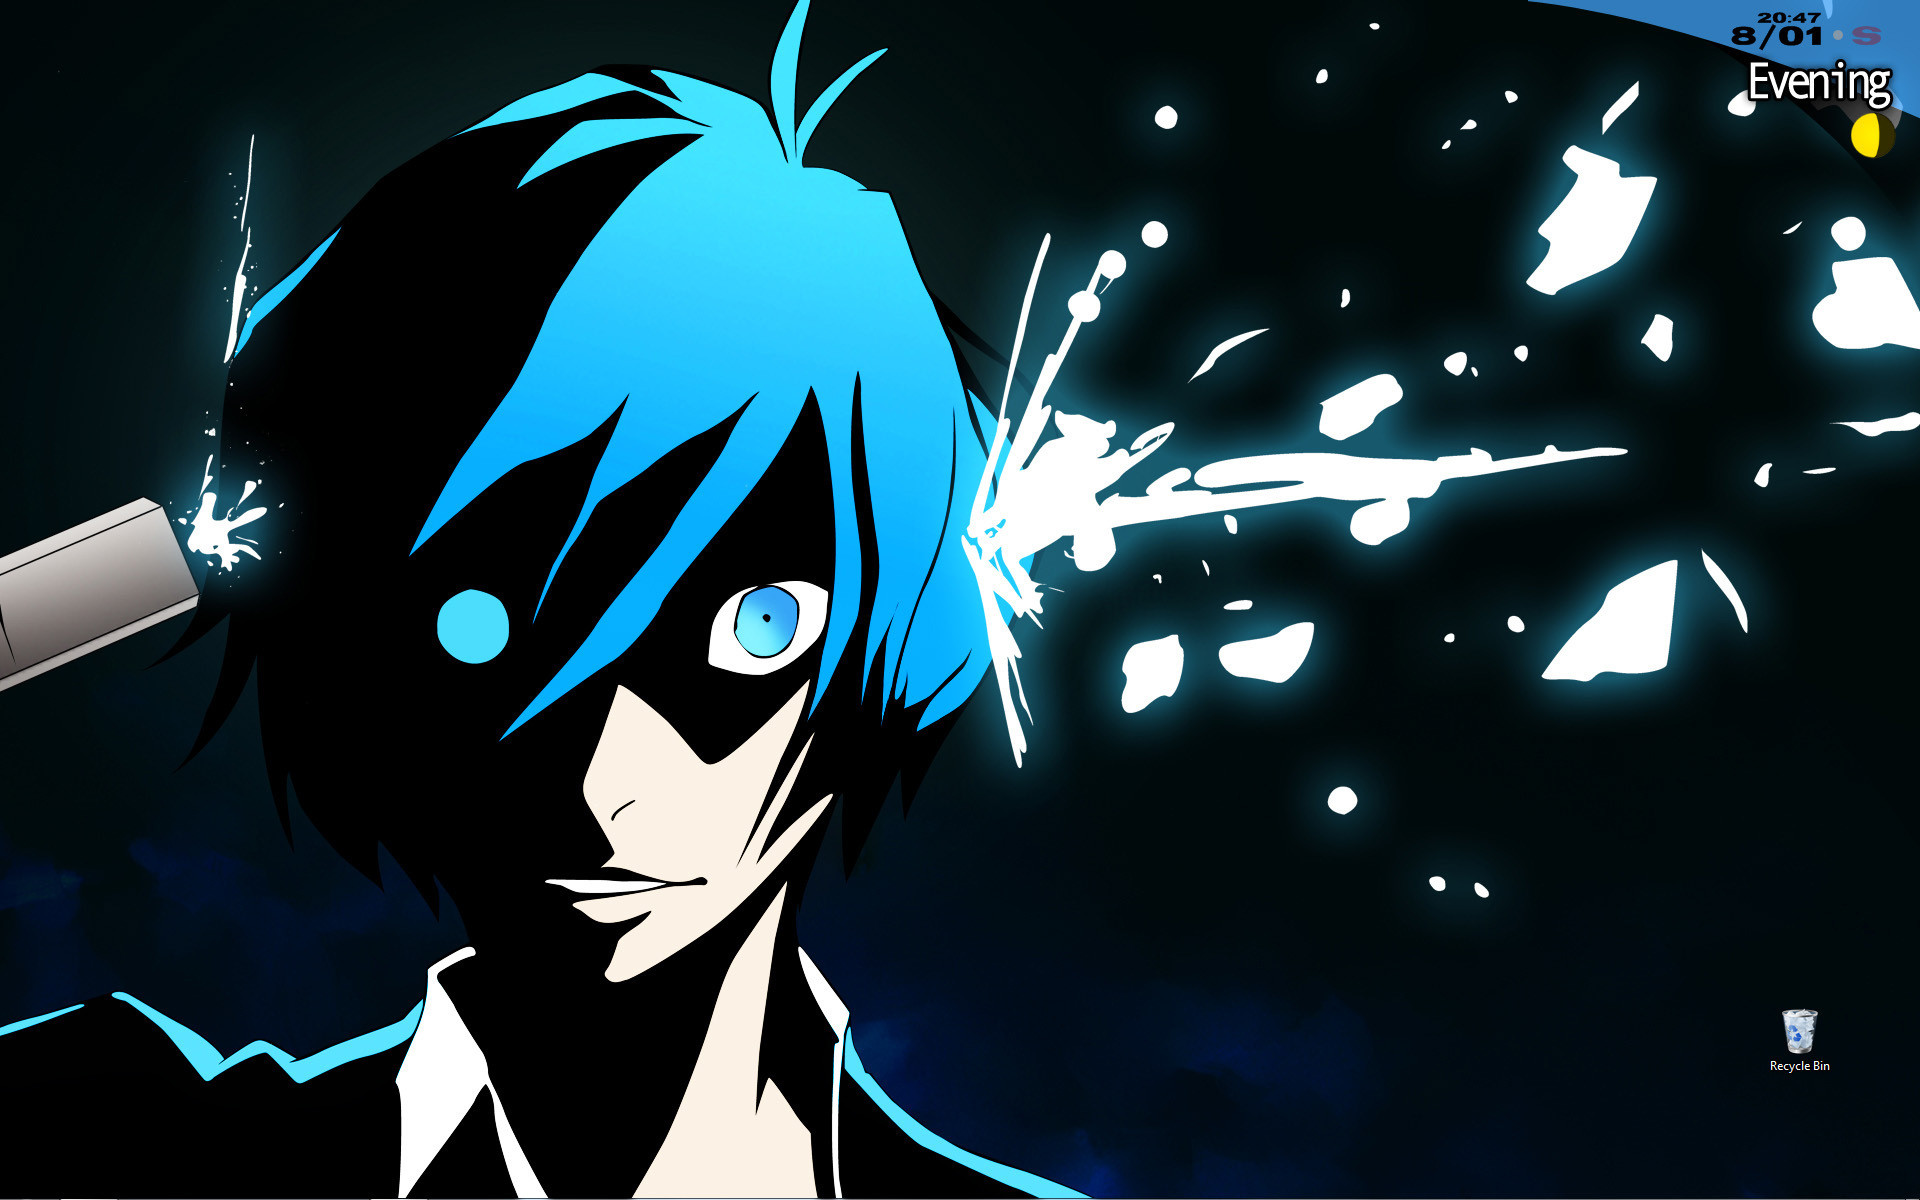 1920x1200 Shin Megami Tensei images Persona 3 HD wallpaper and background photos